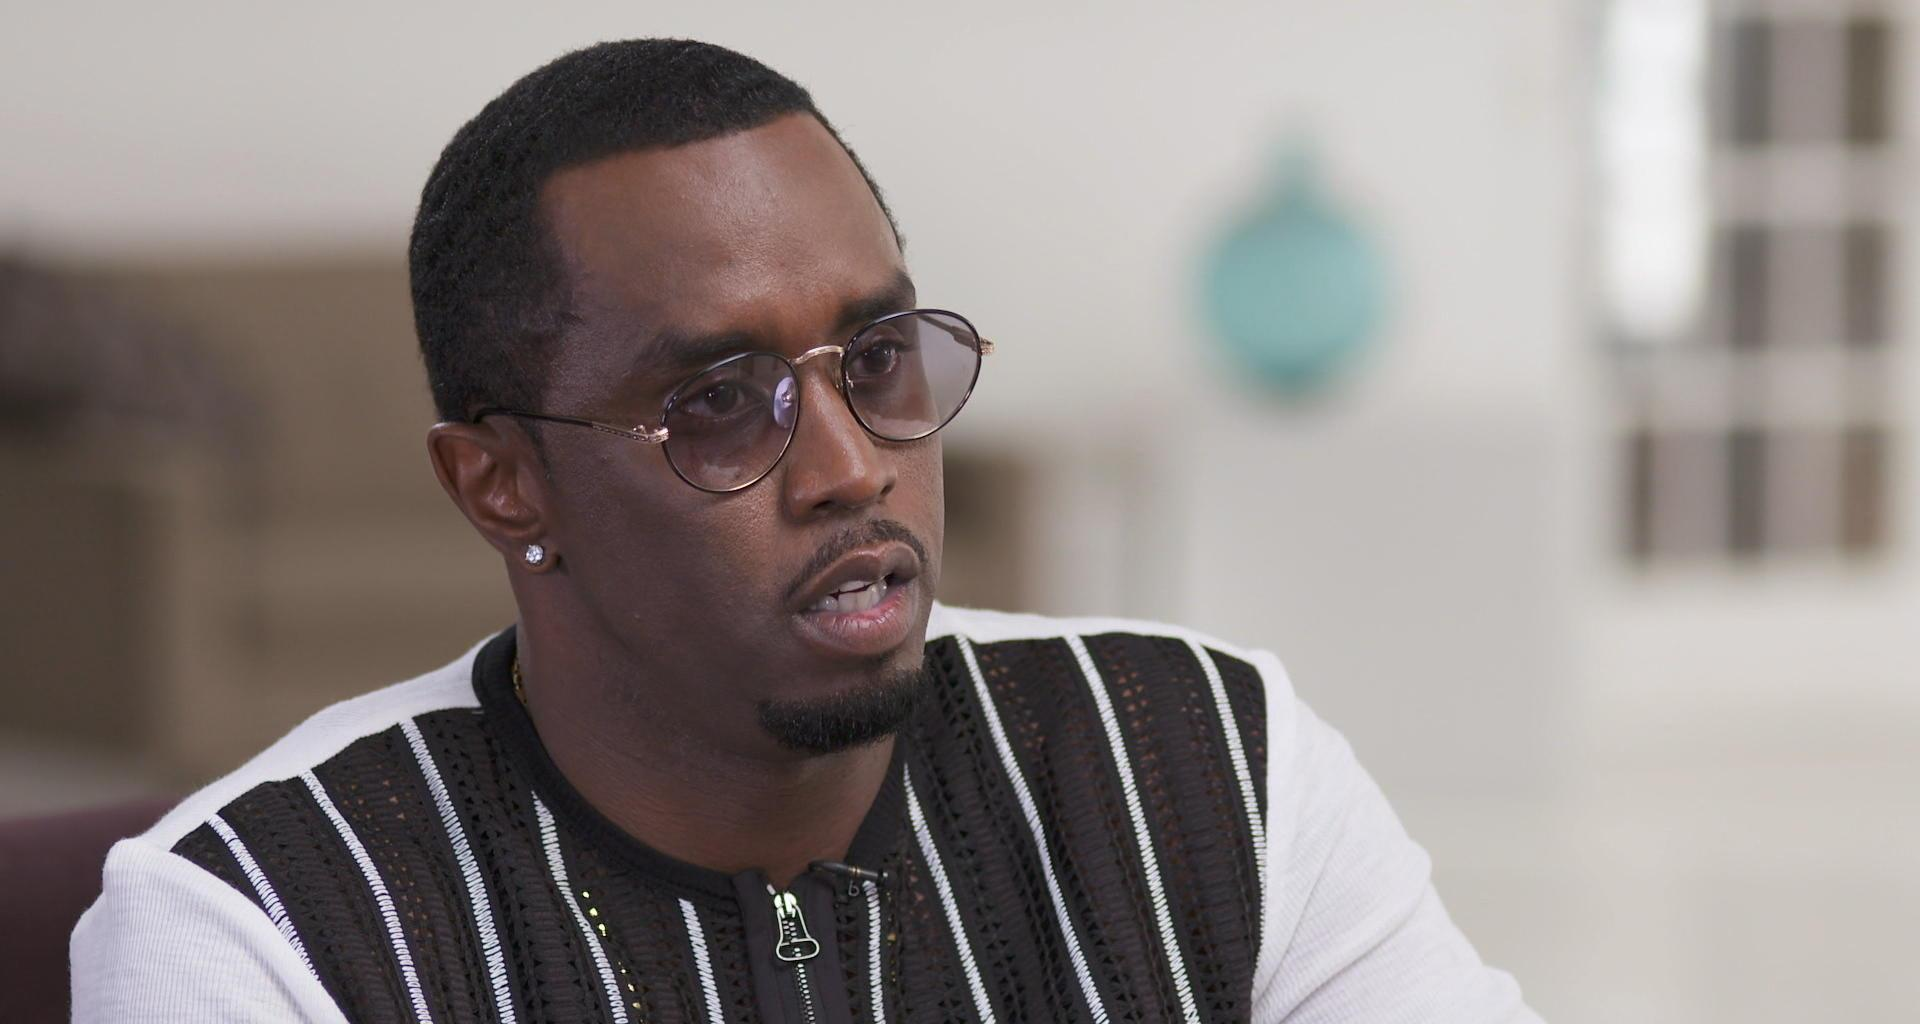 Diddy Praises Mary J. Blige - See The Photo He Shared With Her